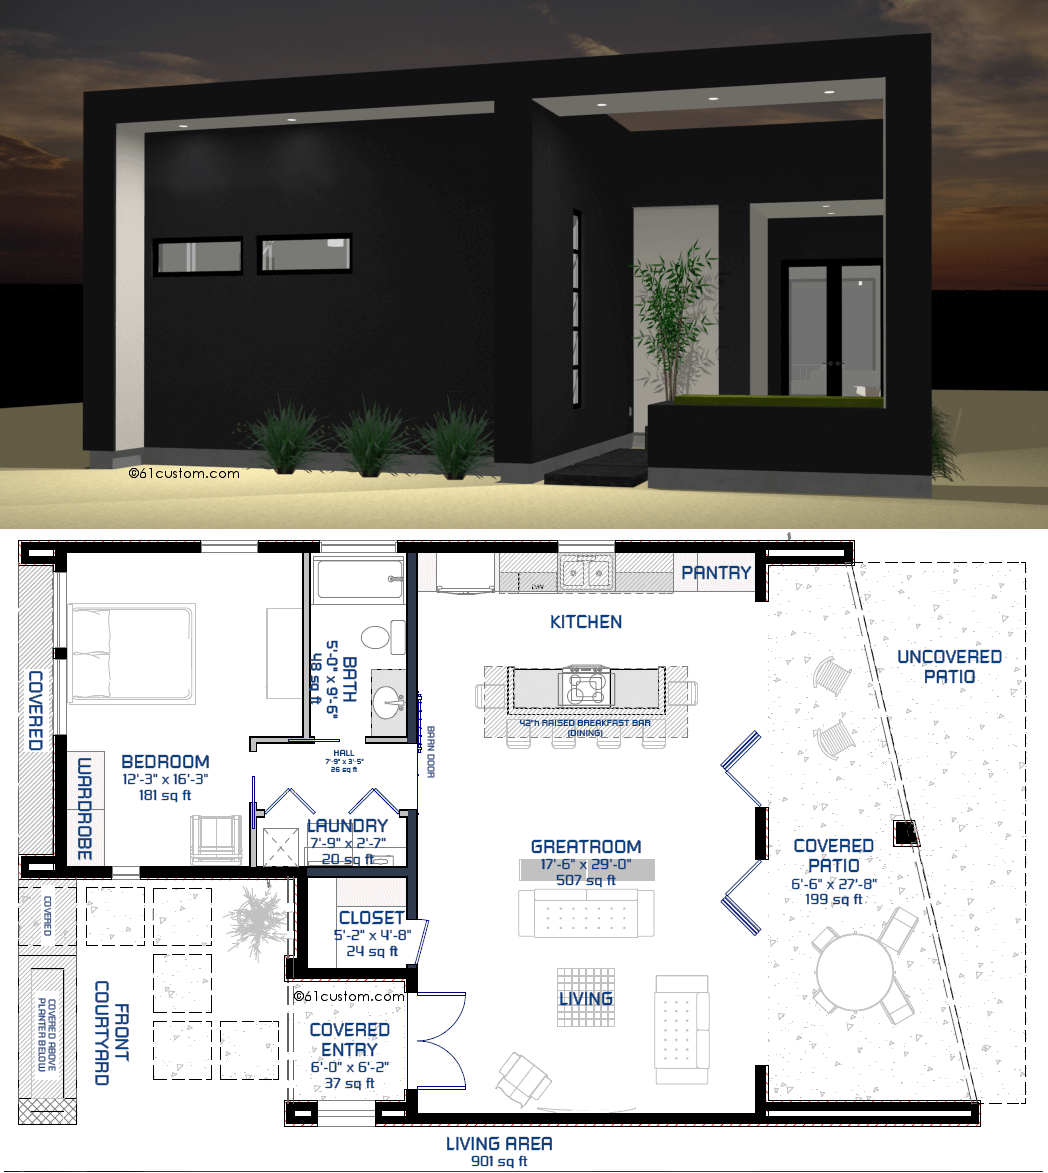 Studio900 small courtyard plan for Modern tiny house design